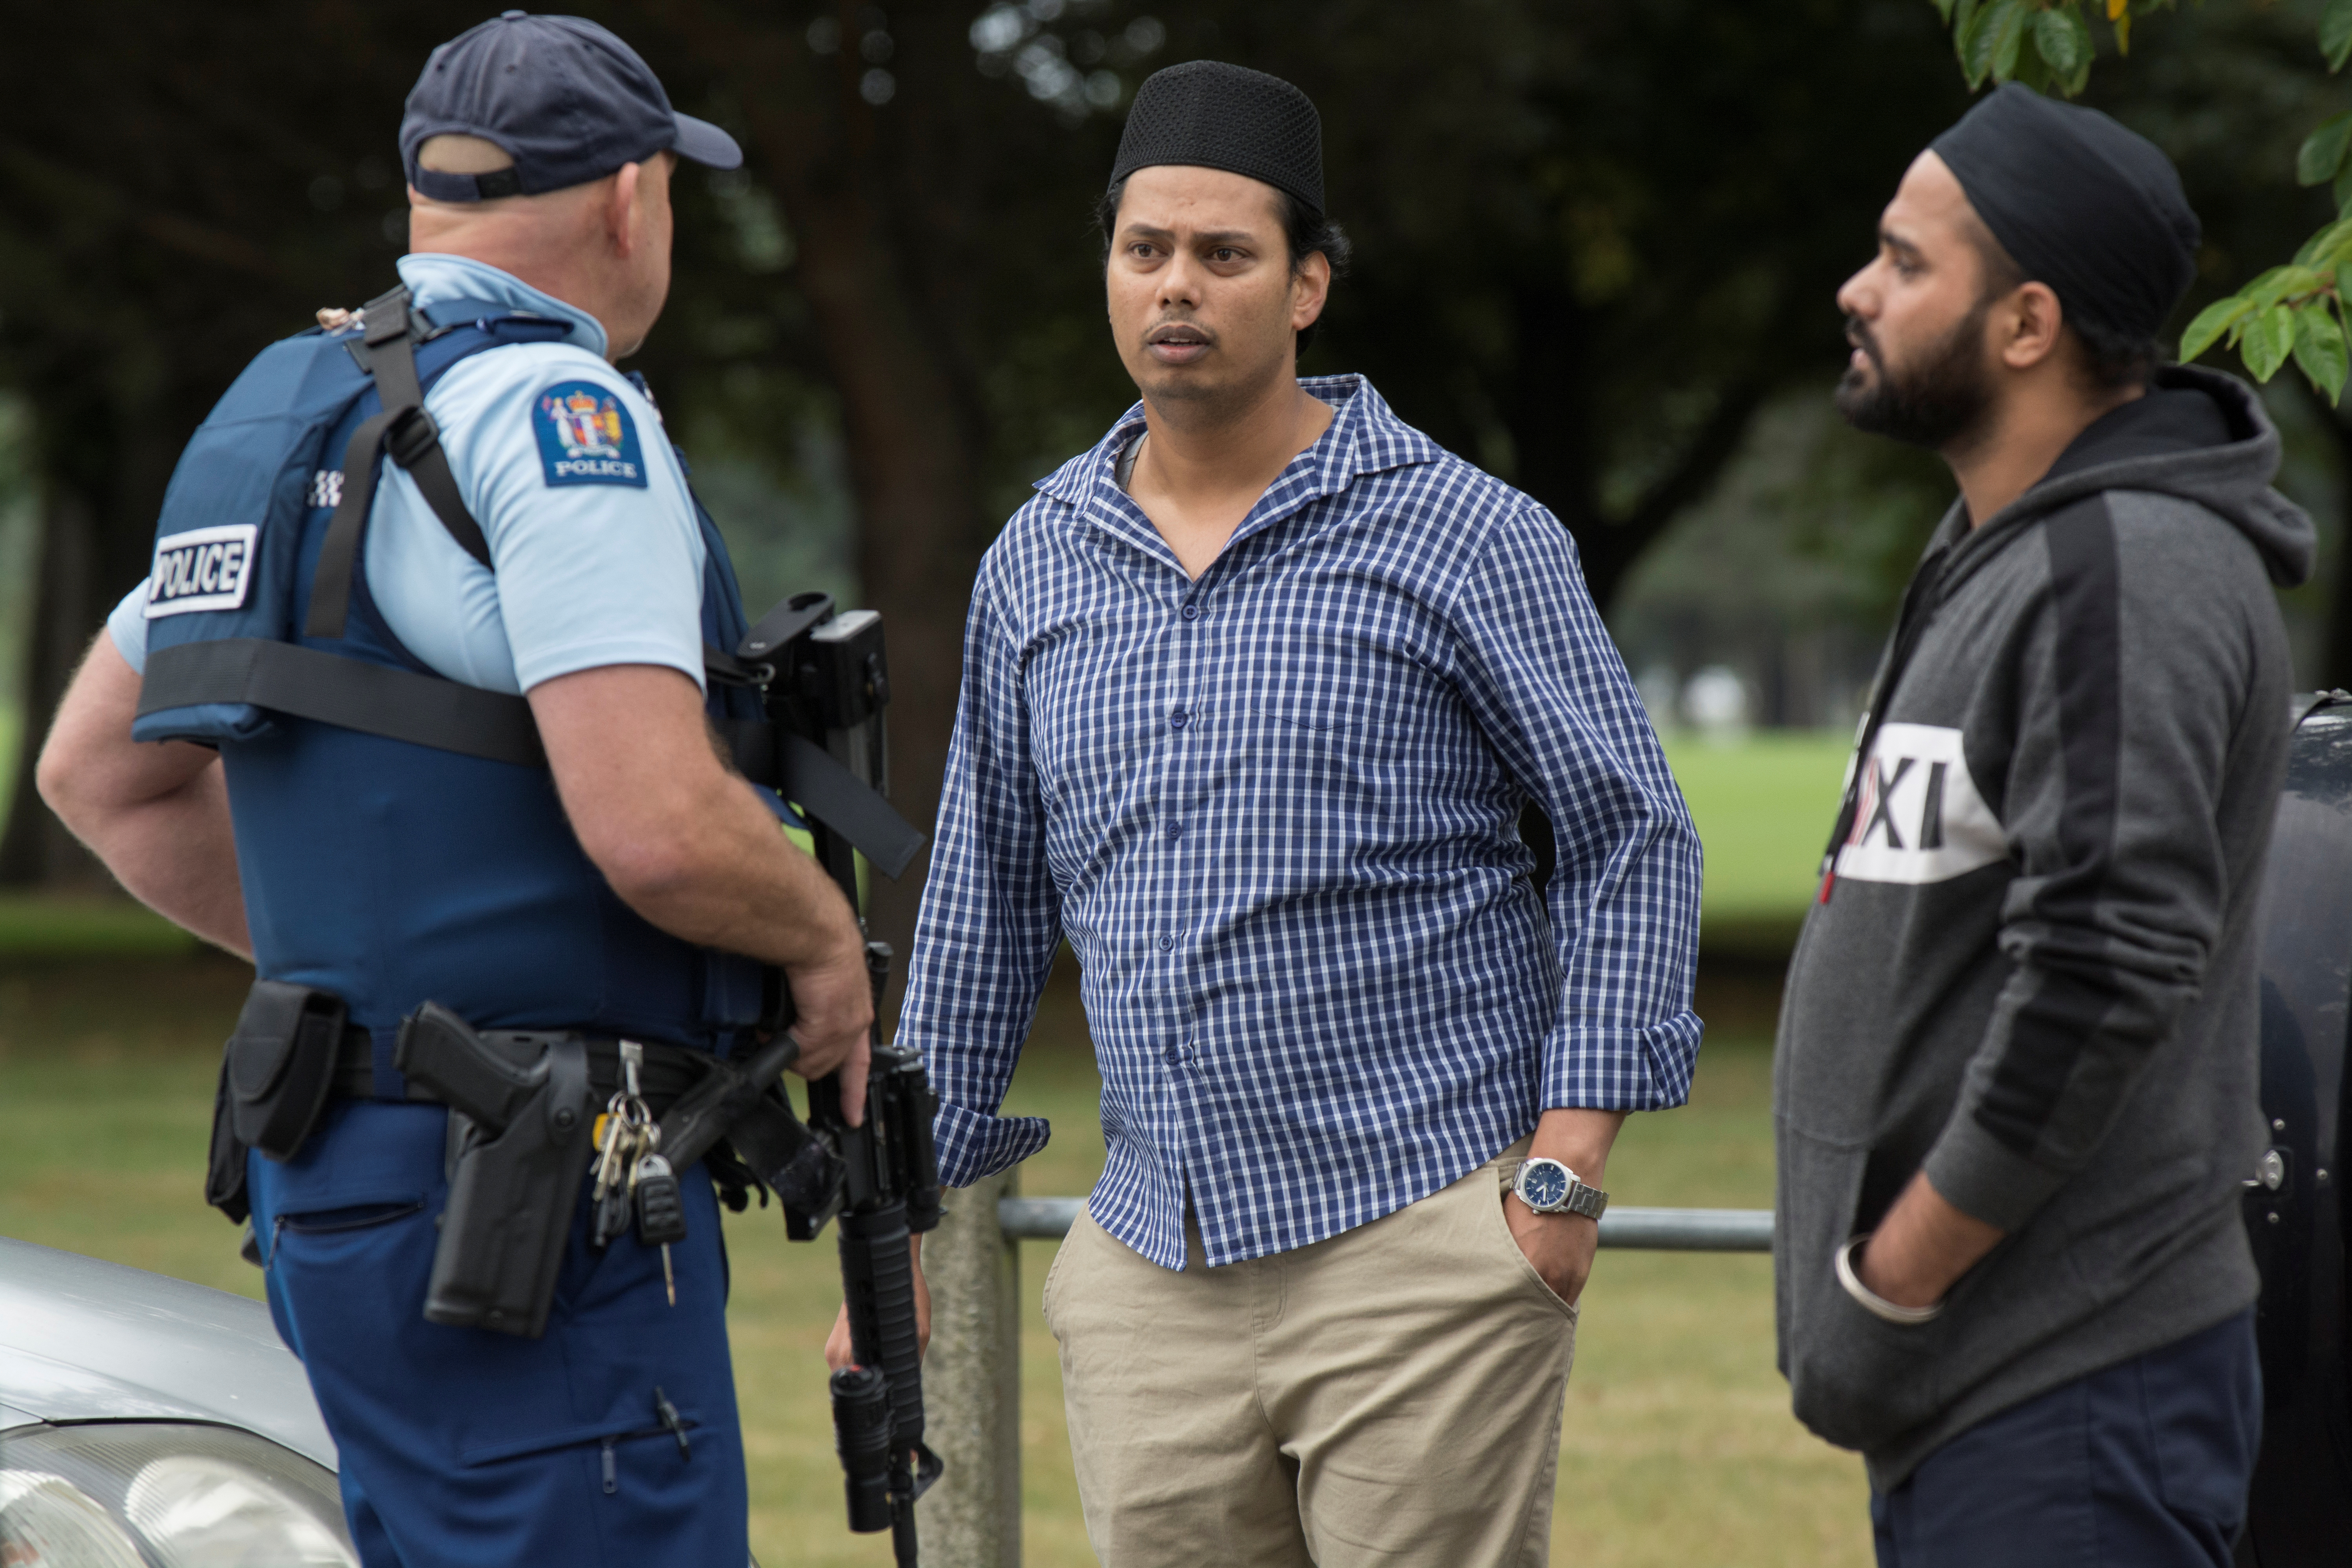 Forty-nine killed in New Zealand mosque shootings - police | The